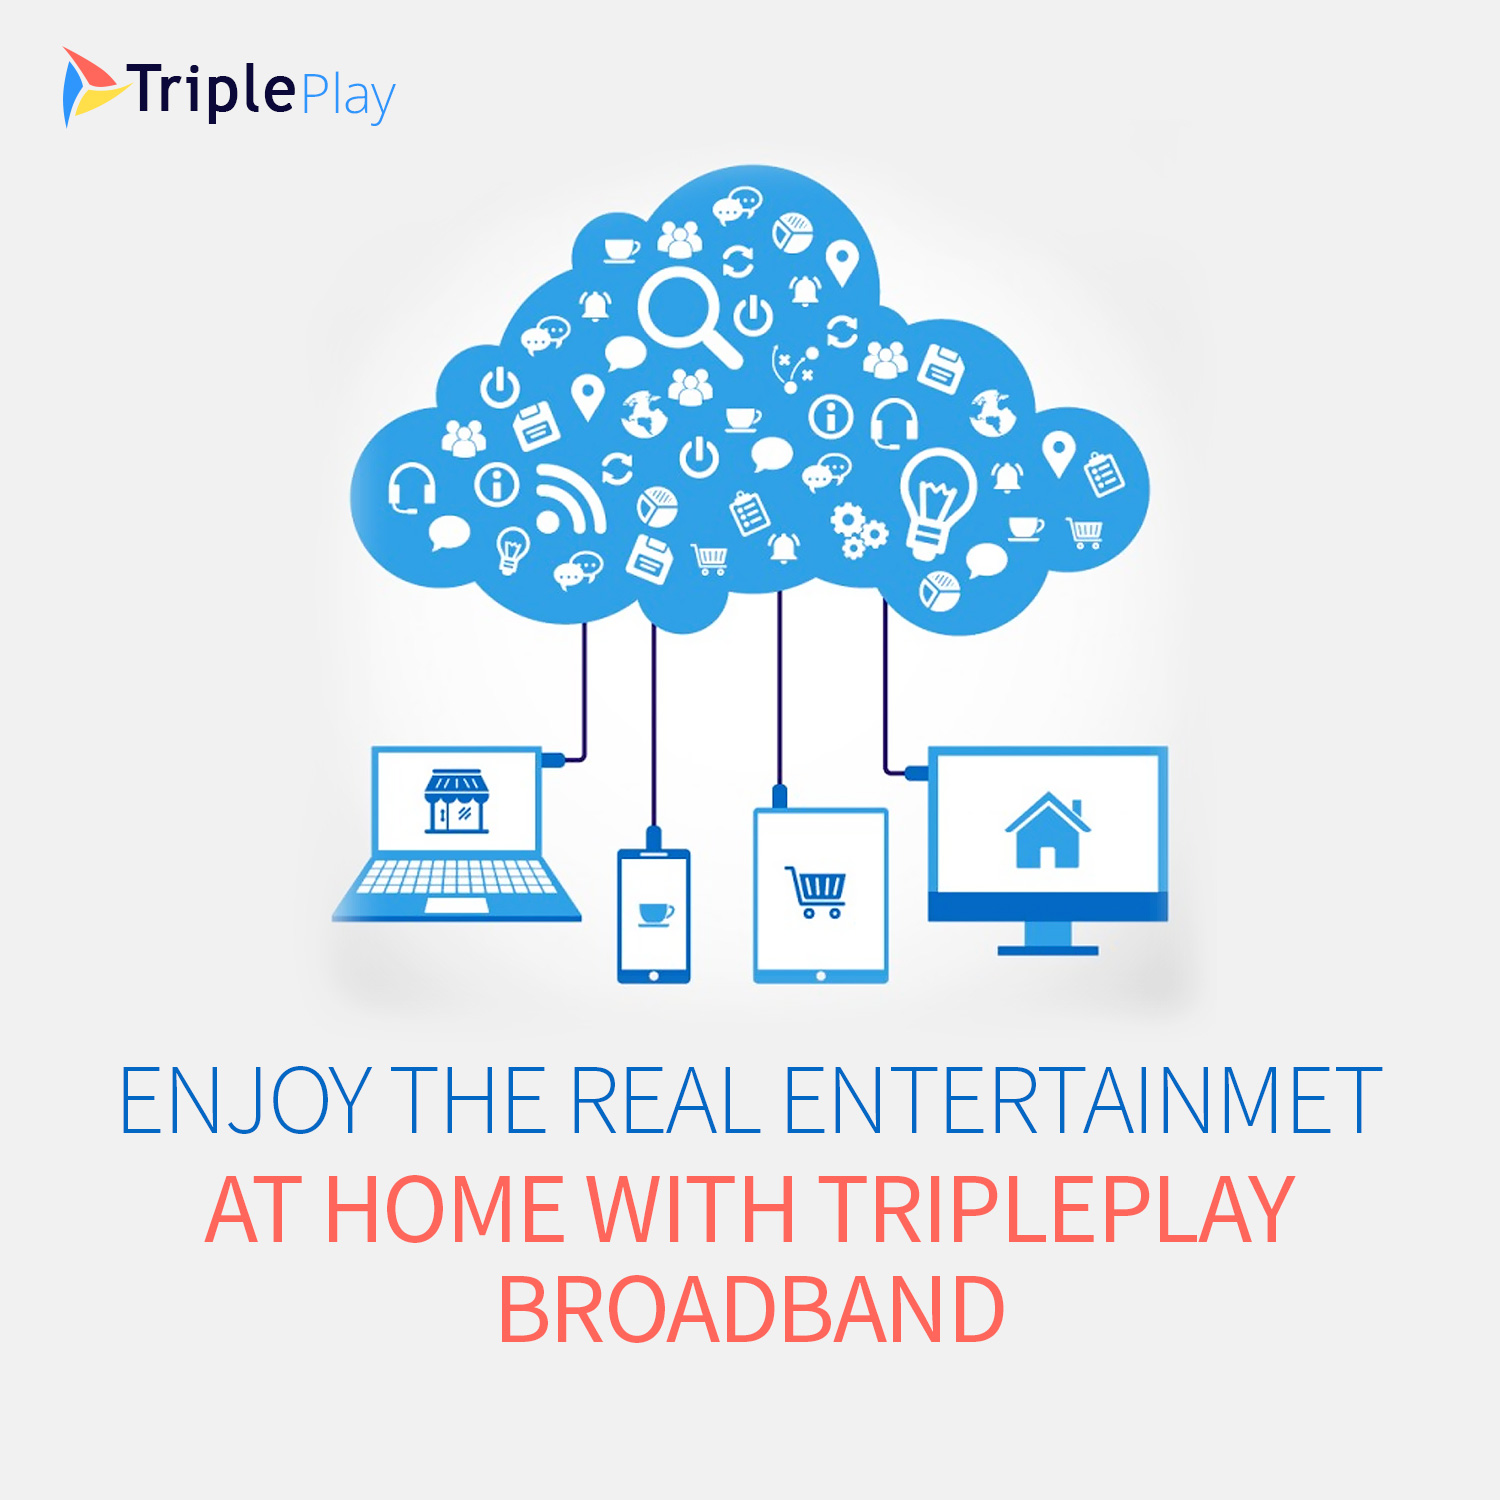 Enjoy the Real Entertainment at Home with TriplePlay Broadband